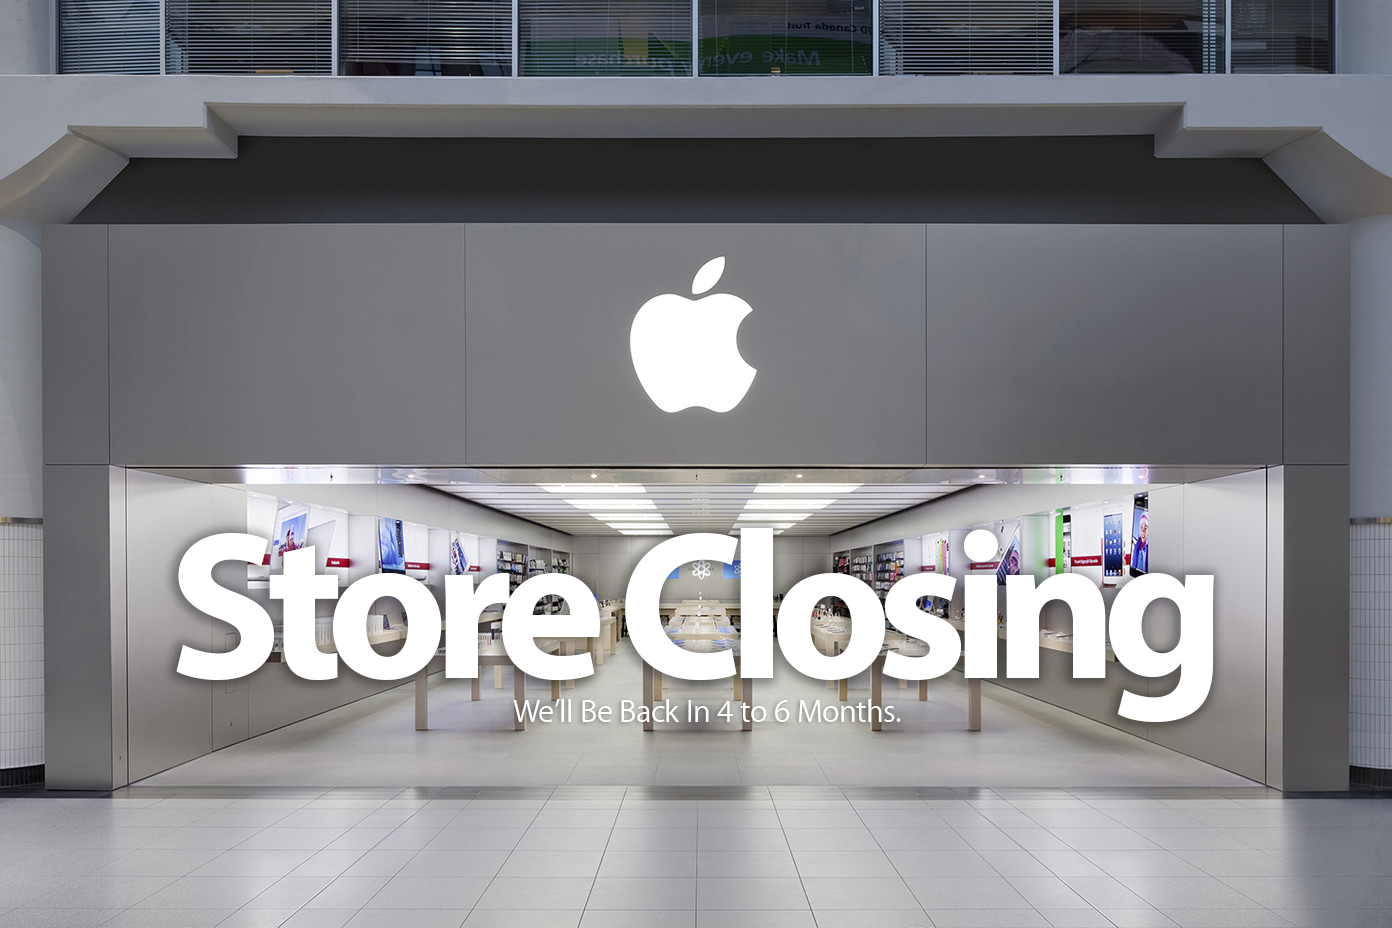 Apple Store In Palm Beach Gardens Mall Closing For 4 to 6 Months